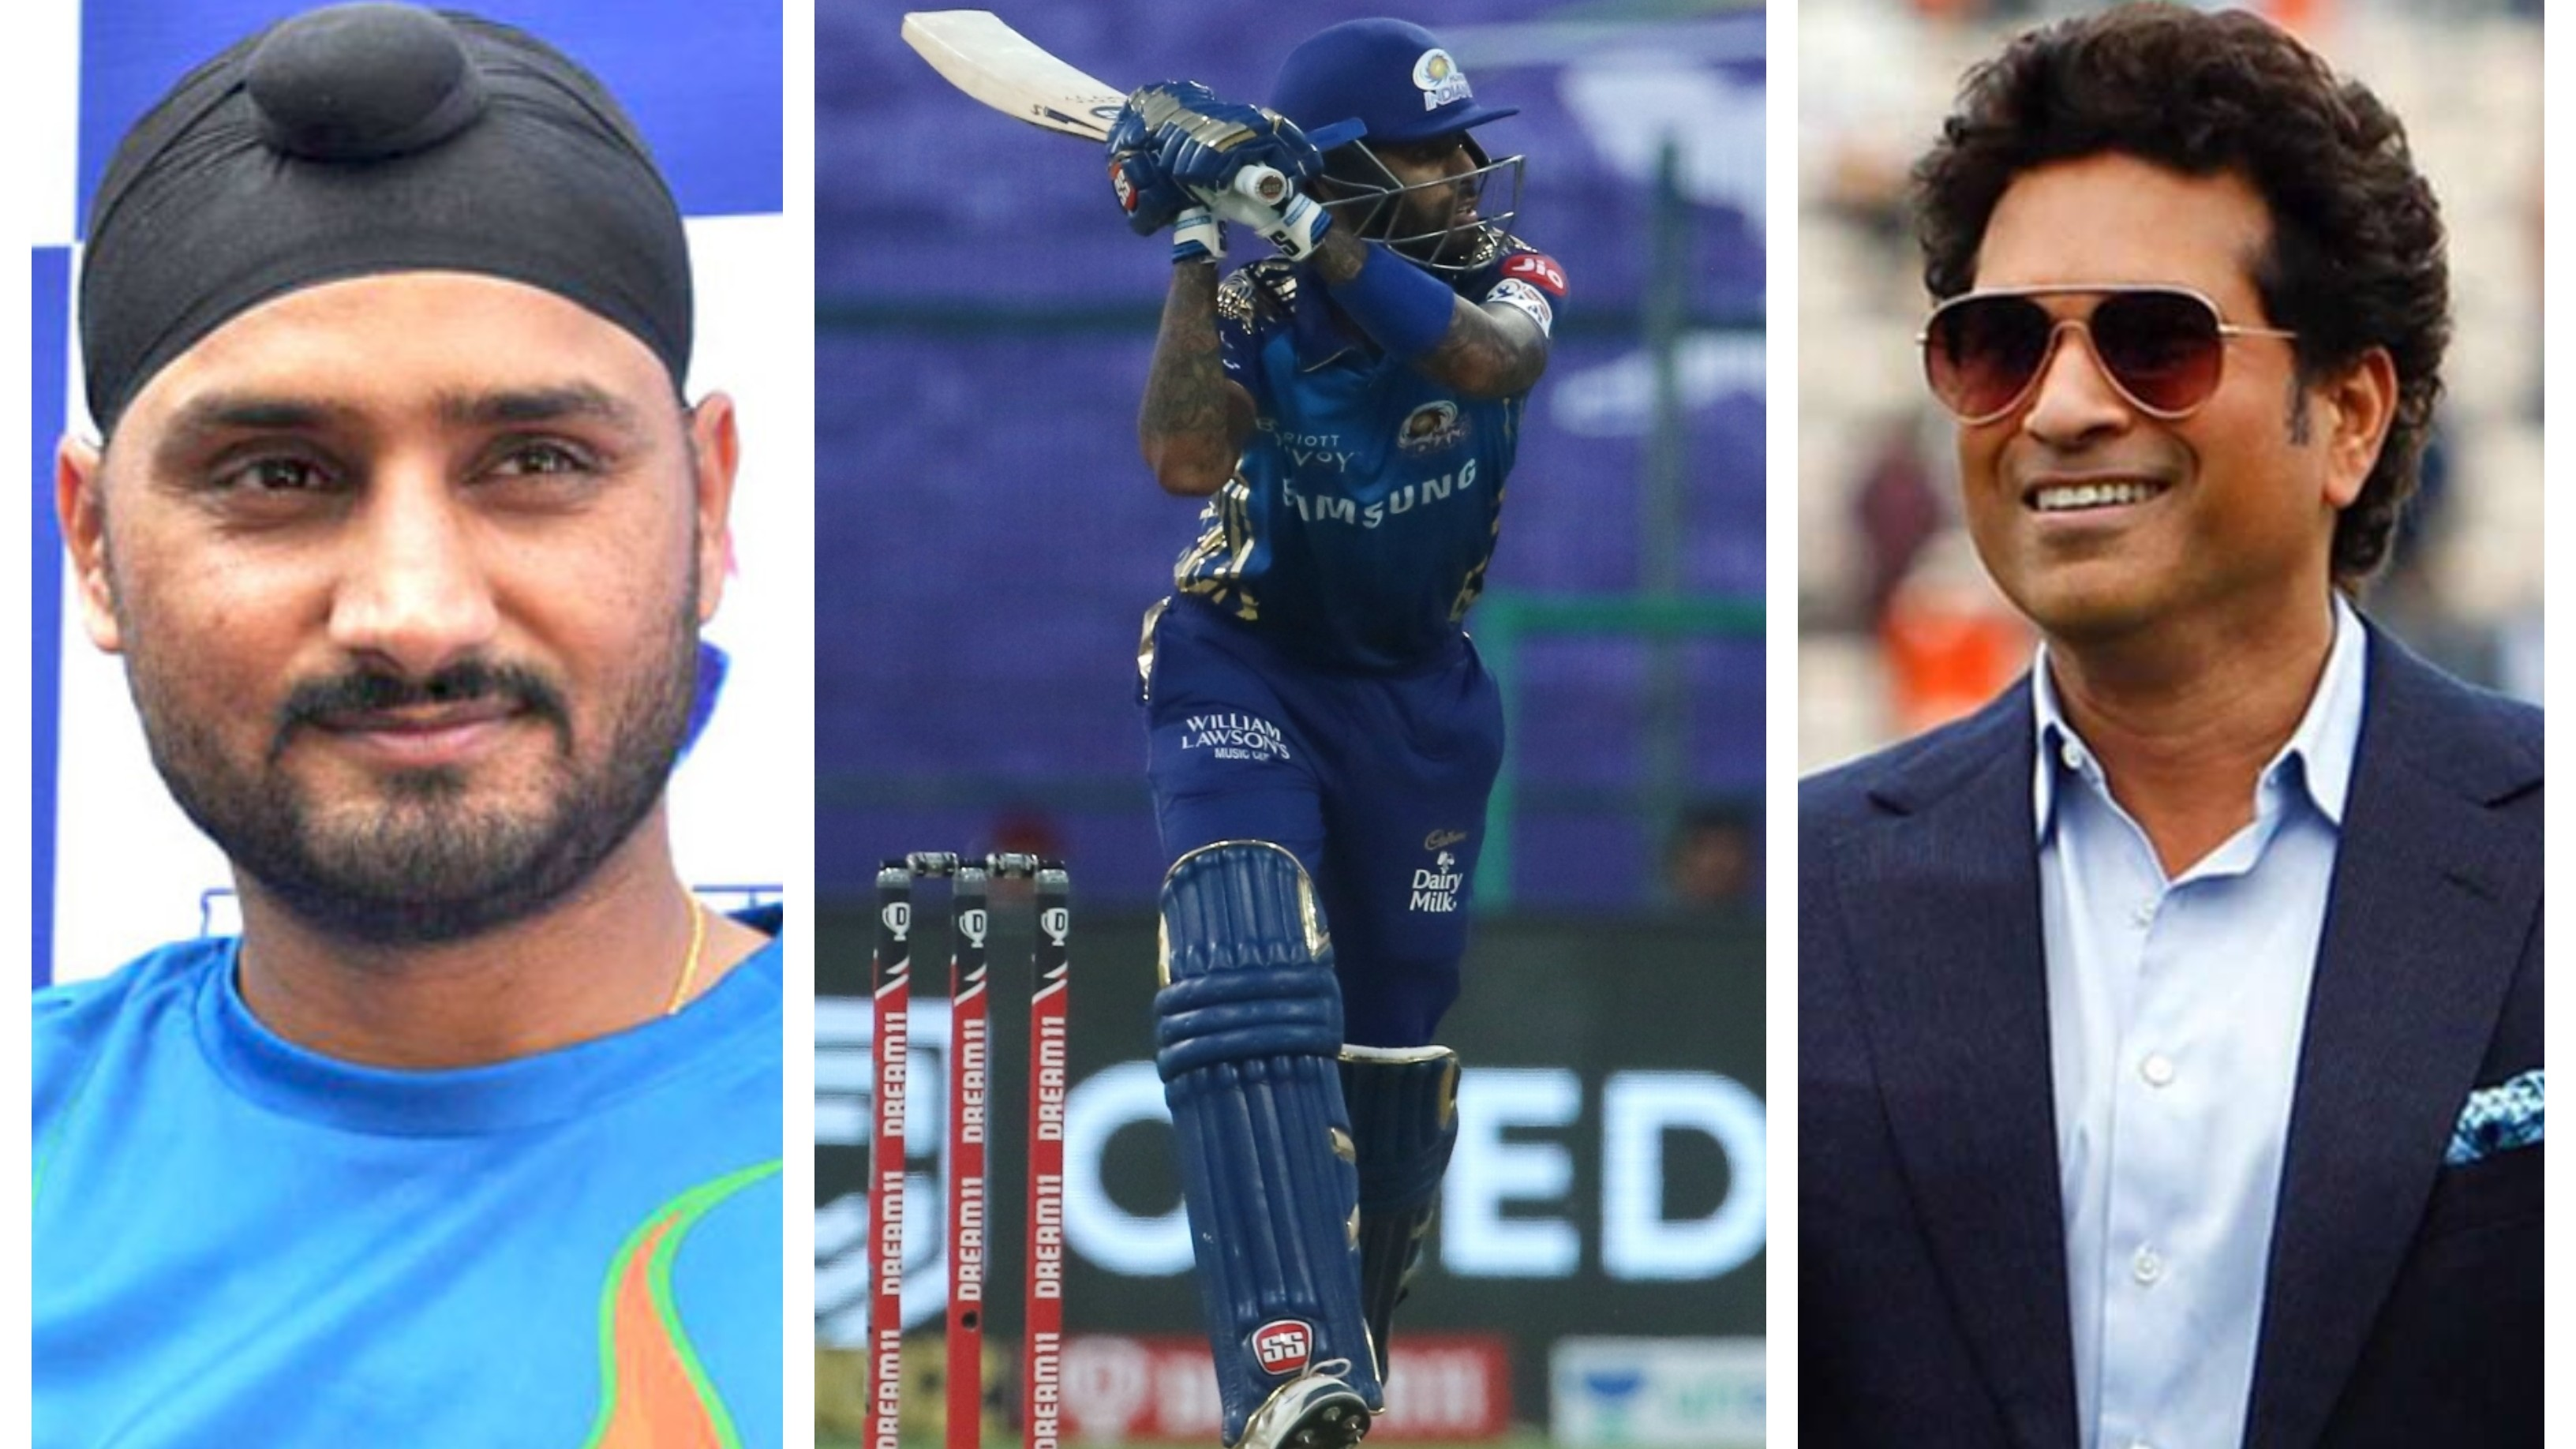 IPL 2020: Cricket fraternity reacts as Suryakumar Yadav's whirlwind 79* takes MI to 193/4 against RR